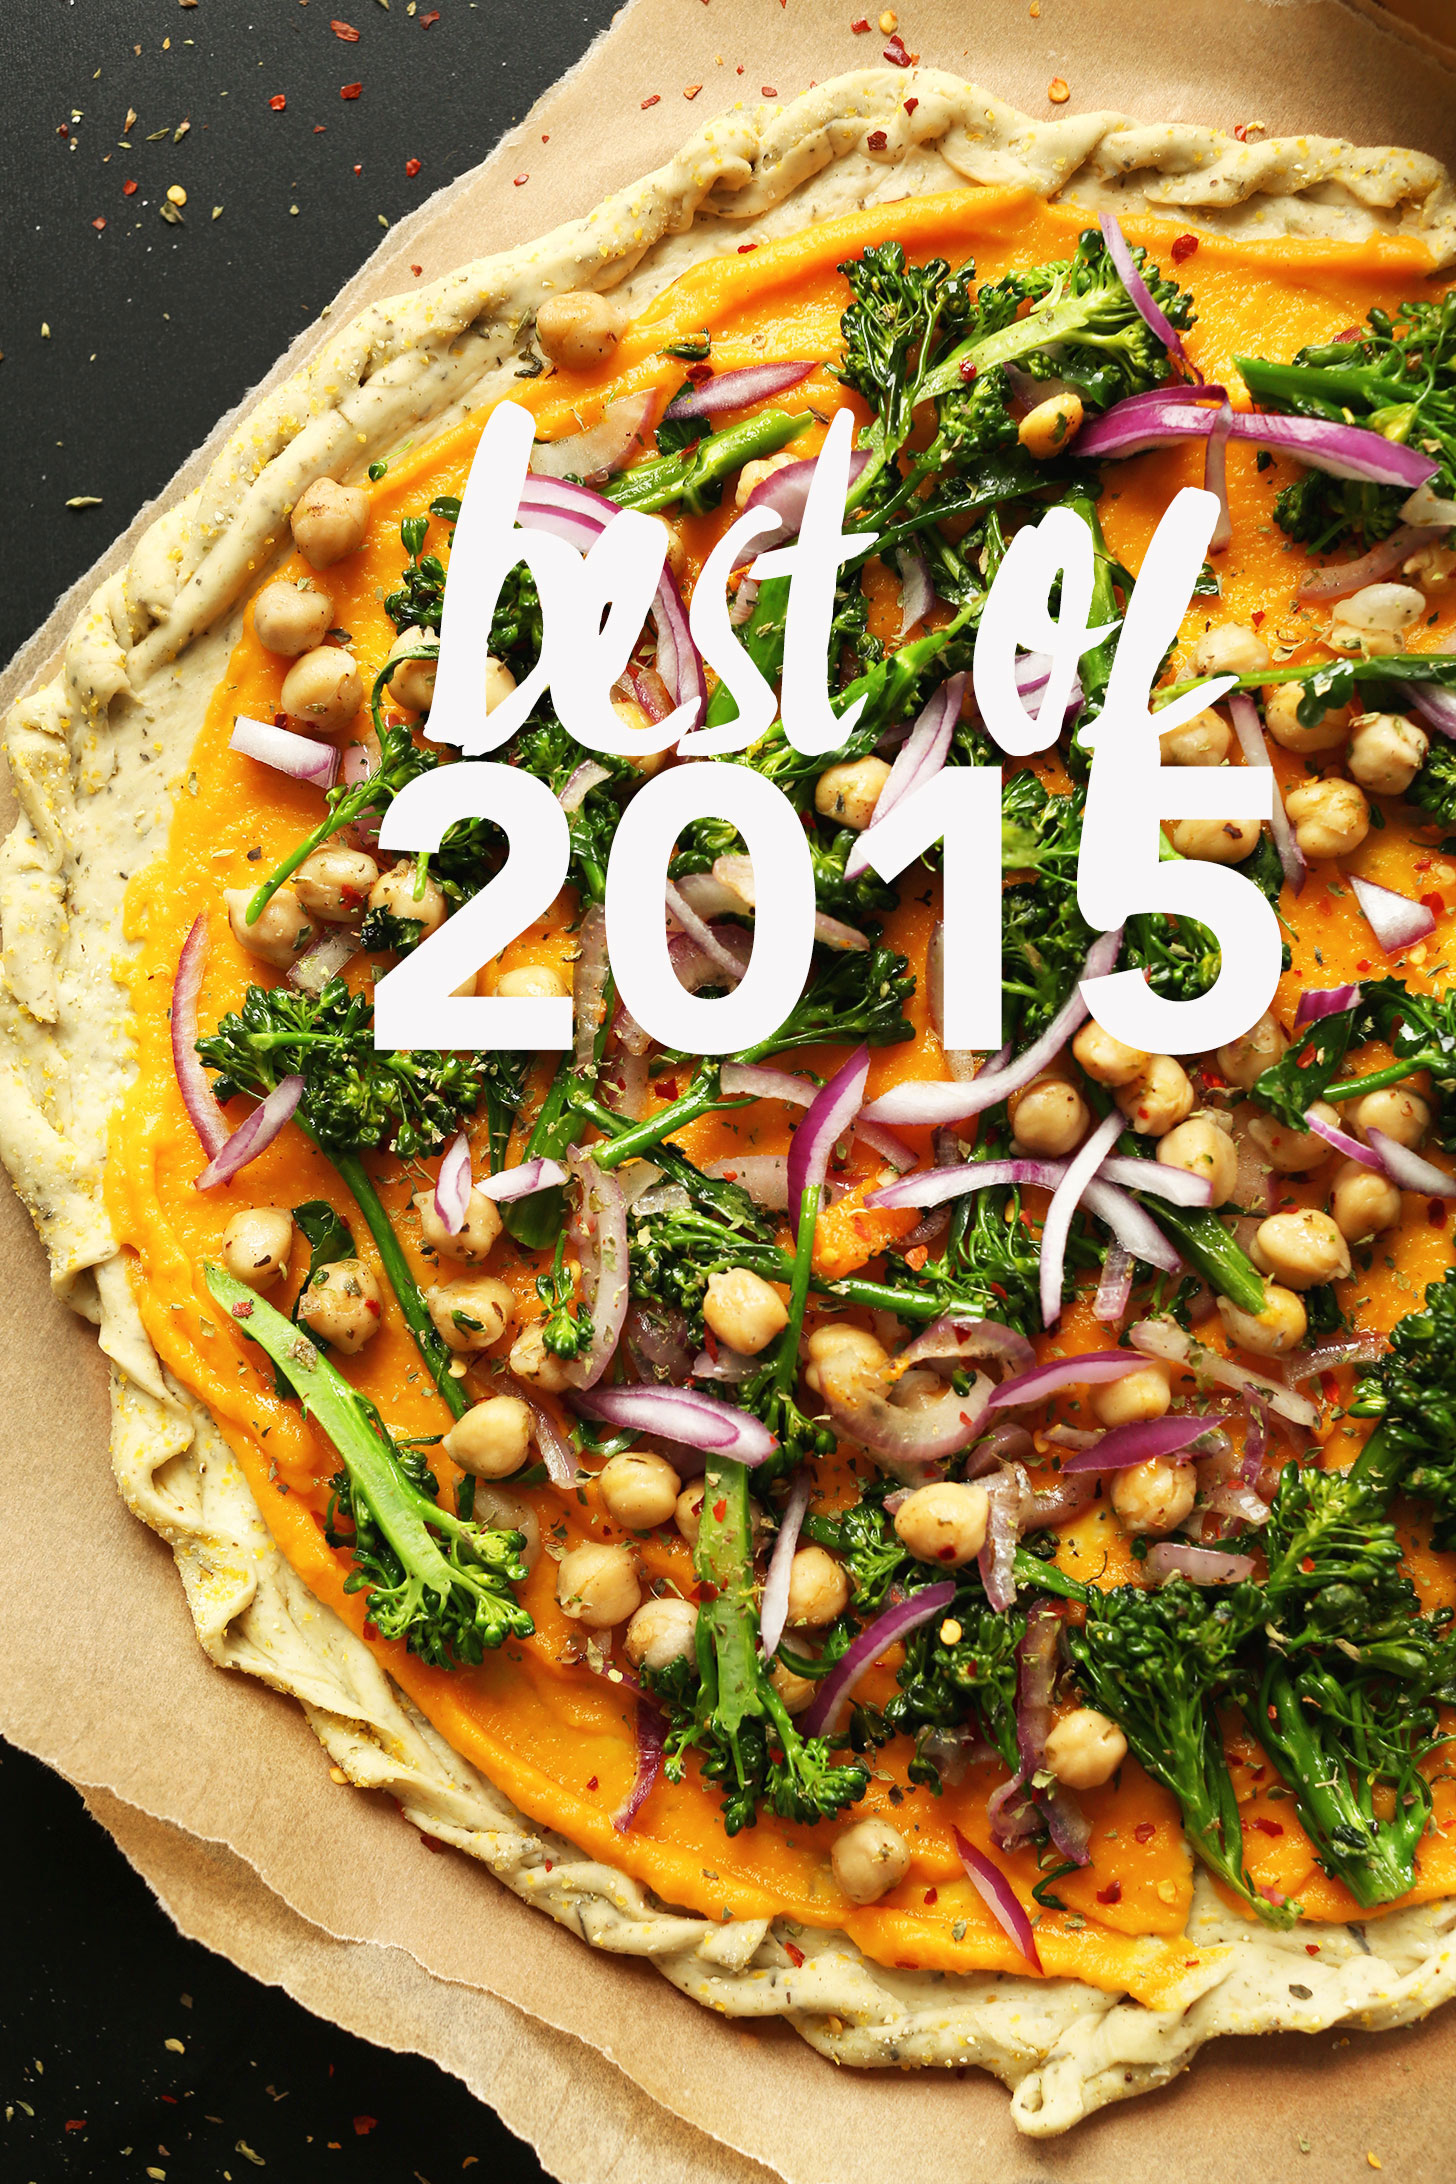 Photo of pizza for our Best of 2015 recipe roundup